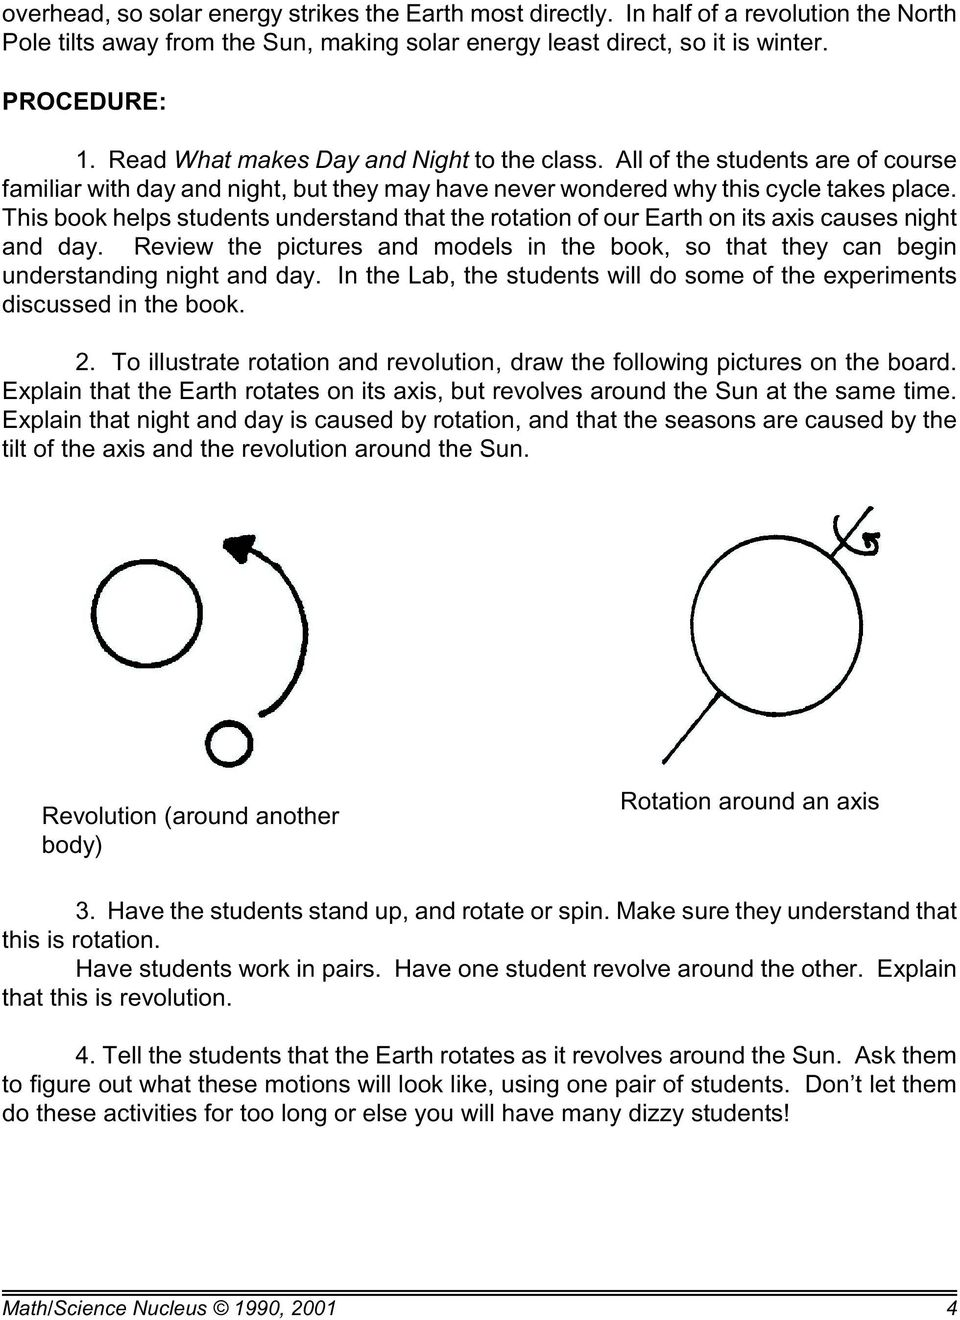 This book helps students understand that the rotation of our Earth on its axis causes night and day. Review the pictures and models in the book, so that they can begin understanding night and day.